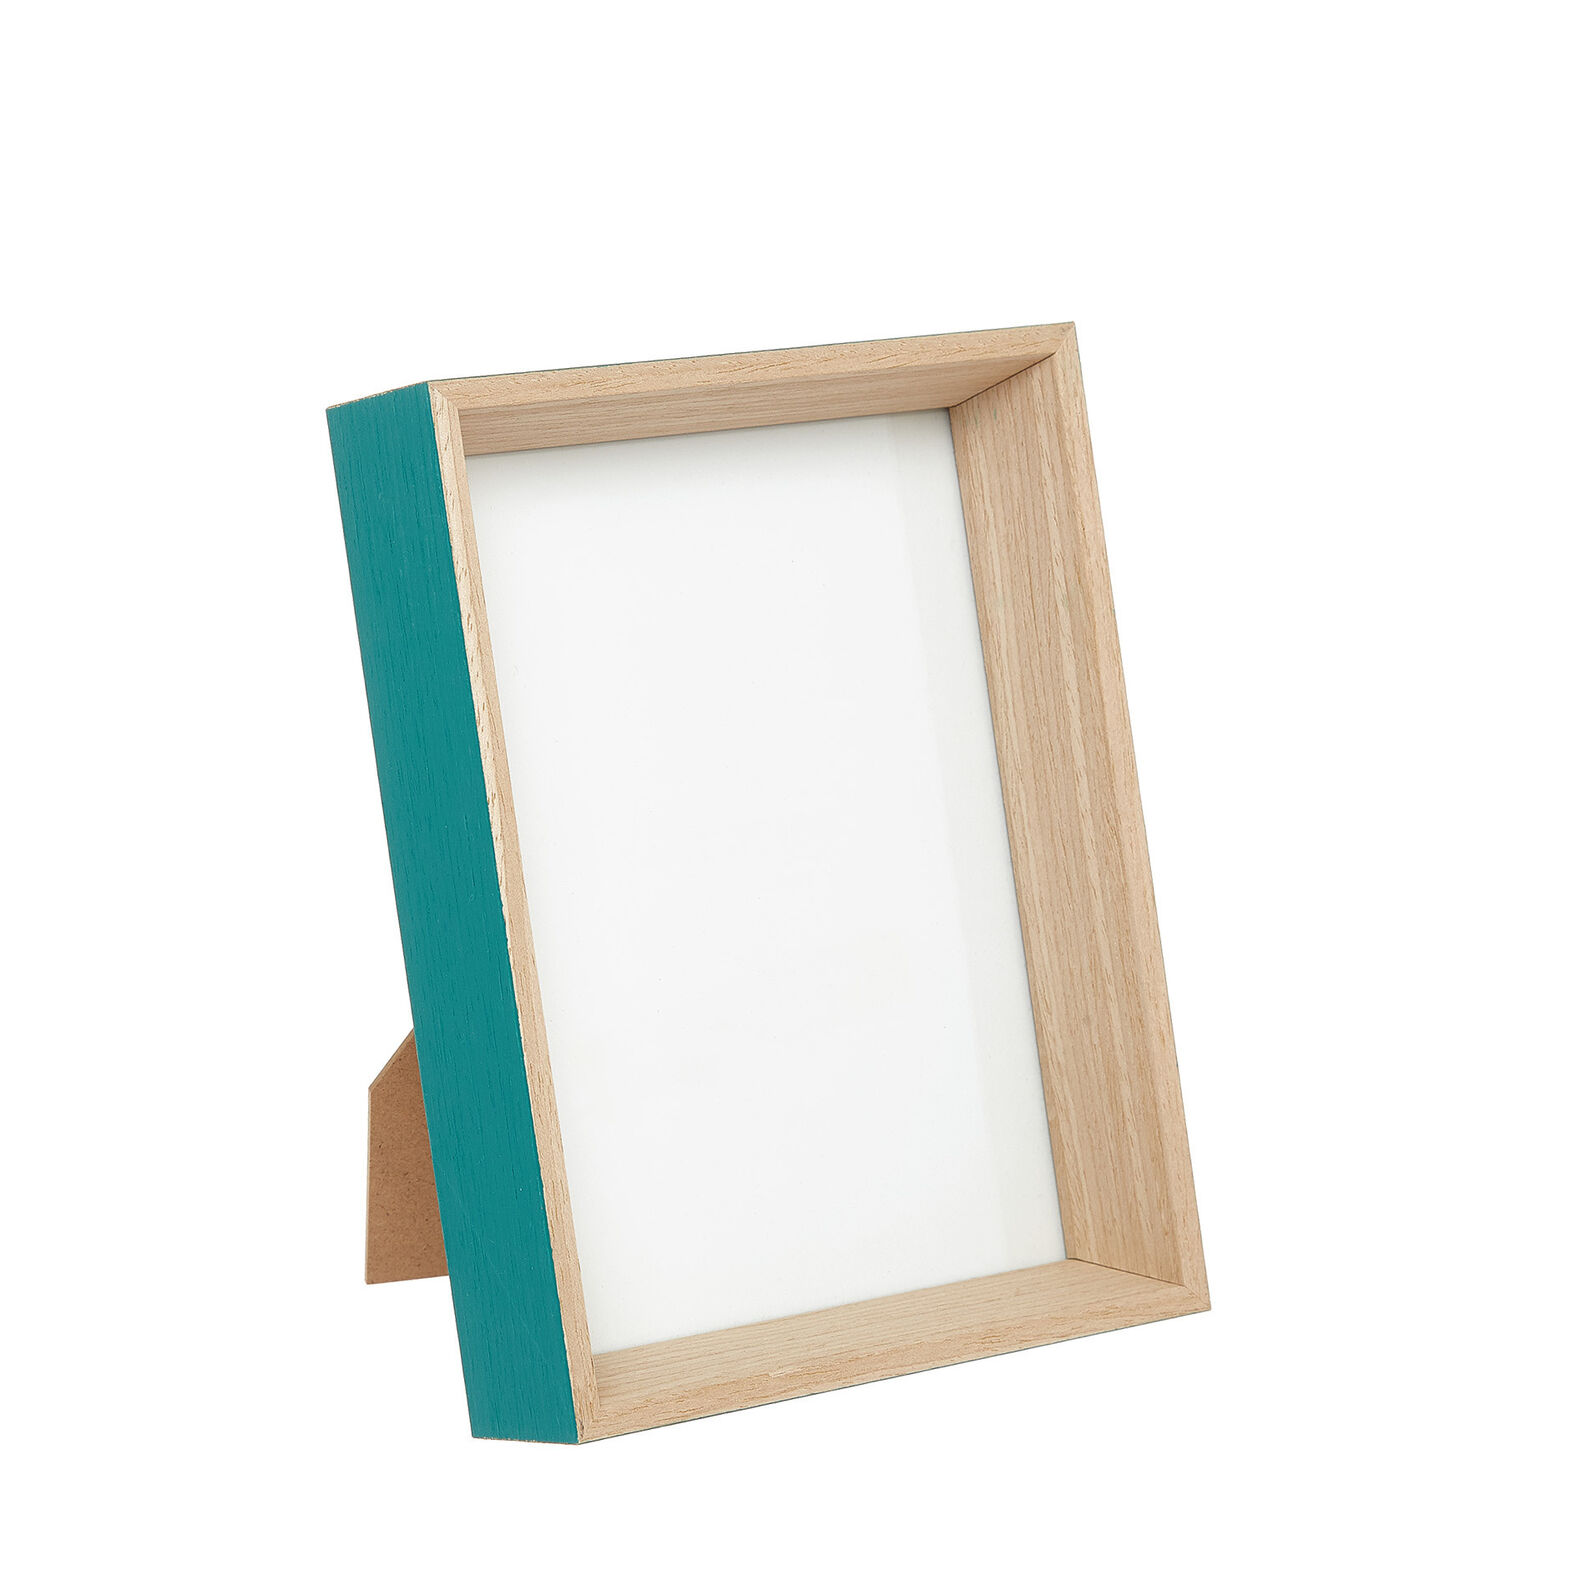 Wooden photo frame.